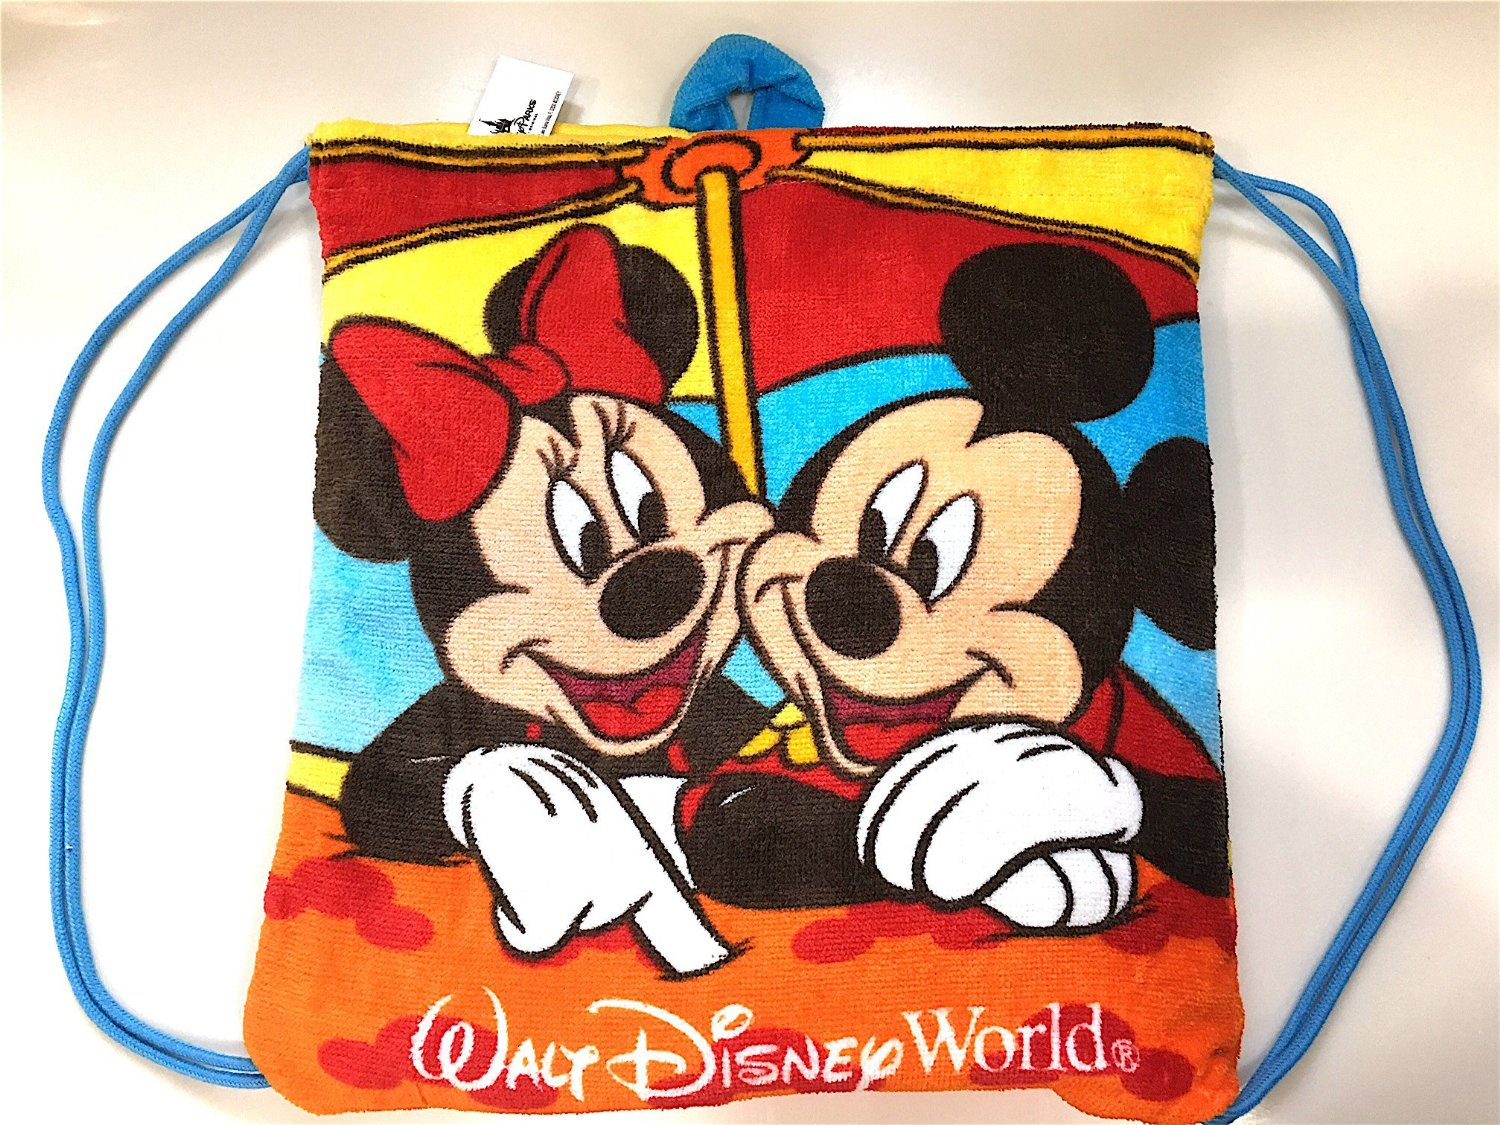 Walt Disney World Mickey Minnie Mouse Character Colorful Beach Towel Backpack Set New